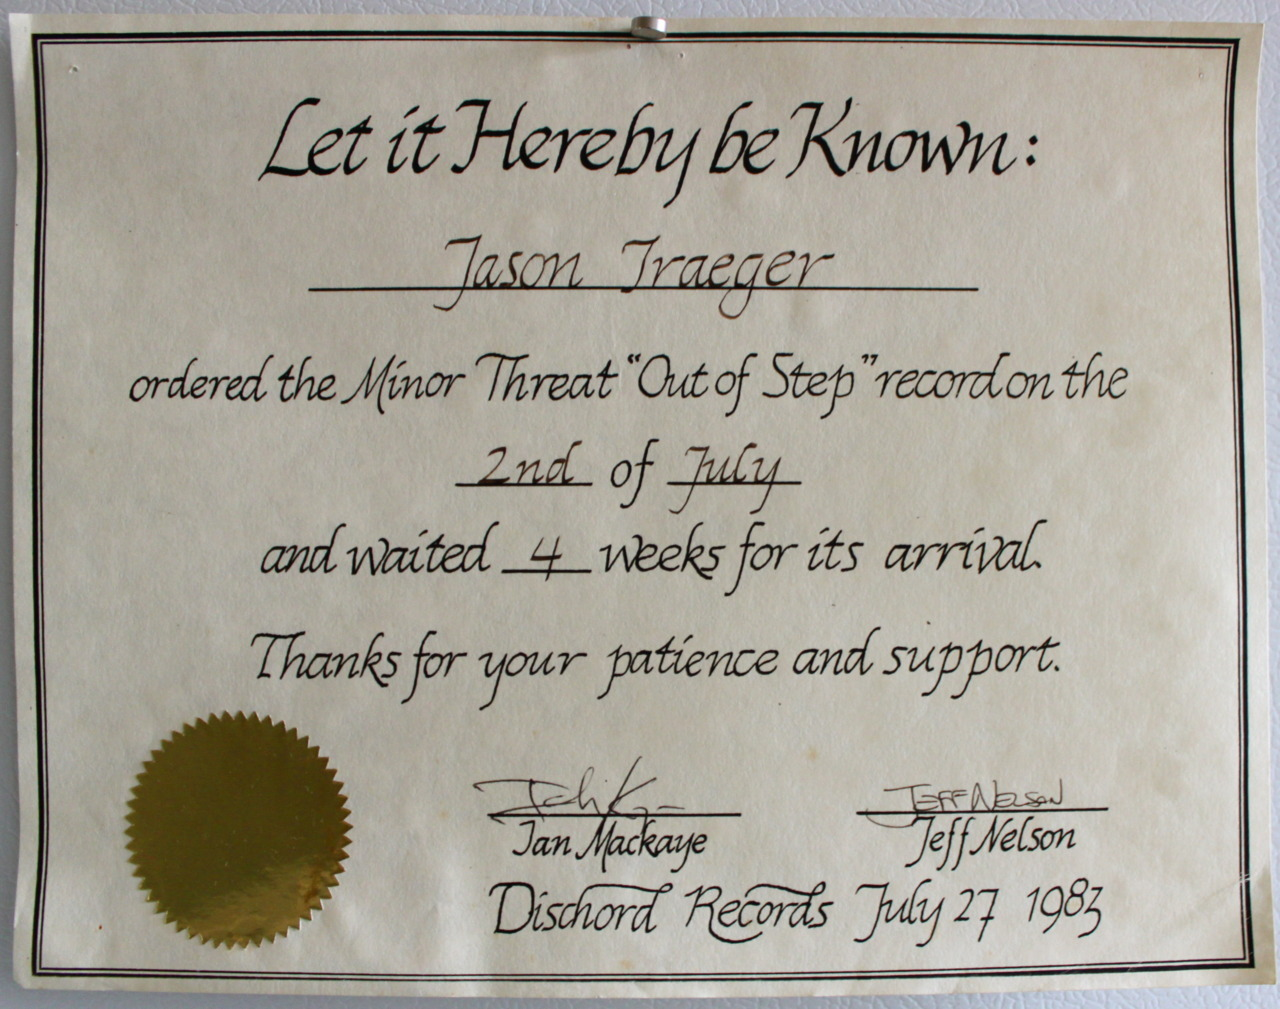 "CERTIFICATE OF PATIENCE TO ME FROM MINOR THREAT TACOMA 1983  This is exactly why as a kid I loved sending away for records so much. Minor Threat were one of my very favorite East Coast Hardcore bands second maybe only to the incomparable Bad Brains. I loved their lyrics and their message but more than anything it was their sound that set them apart from so many other lesser bands. Lyle Preslar's thick, rich guitar tone, Jeff Nelson's urgent, artful drumming, Brian Baker's bouyant bass lines and of course Ian's tuneful, heartfelt, shouting, talking and singing when heard together in tightly knit, perfectly rendered chunks were just awesome. Living in Seattle and Tacoma as I did during the band's brief run meant I never got to see them perform live. I do remember seeing their name on a list of upcoming shows at The Metropolis and being ecstatic about it. As fate would have it however, the band would break up before fulfilling my dream of seeing them. The show never happened. At least I had the records. Their first two 7""'s and the tracks on Dischord's excellent Flex Your Head compilation, (which constituted a third e.p. the way I listened to the album, always setting the needle back at the beginning of Minor Threat's bands of grooves as soon as the last note of the track ""12XU"" sounded) was a miraculous sounding body of work to my young ears.  When I learned there was a new 12"" out I was beyond excited. I sent away for it as soon as I heard about it.  In an earlier post I wrote about the necessity and thrill I had in this era of ordering records through the mail. I mentioned the long wait you'd often have to resign yourself to while the wheels of commerce and the US Postal service spun. Usually I was fine with the wait but this time it was different. Three days after I ordered the new album ""Out of Step"" I started searching the porch with my eyes, looking for the square flat cardboard box. A couple weeks into the wait I remember I'd even close my eyes as I approached the front steps so I could blink them open and make the record show up. Maybe it had been stolen? Now that I think about it, that's really cute. When it finally did arrive a month after I'd ordered it I couldn't have been happier. I was doubly stoked when inside with the album I found this ""certificate of patience"" made out to me personally and signed by Ian and Jeff of Minor Threat. I thought it was very funny and too damn cool at the time and I still do! Of course the record is one of the greatest of the era, a total classic, and a great work of art for all time. Minor Threat continues to be one of the rare bands from that era whose music always sounds fresh, new, and exciting. The songs never sound the least bit dated, the lyrics speak to anyone in any time and the sound is still the sound. I gotta get this thing in a frame! Pronto! Minor Threat ""certificate of patience"" made out to me and signed by Ian MacKaye and Jeff Nelson from my personal archive."